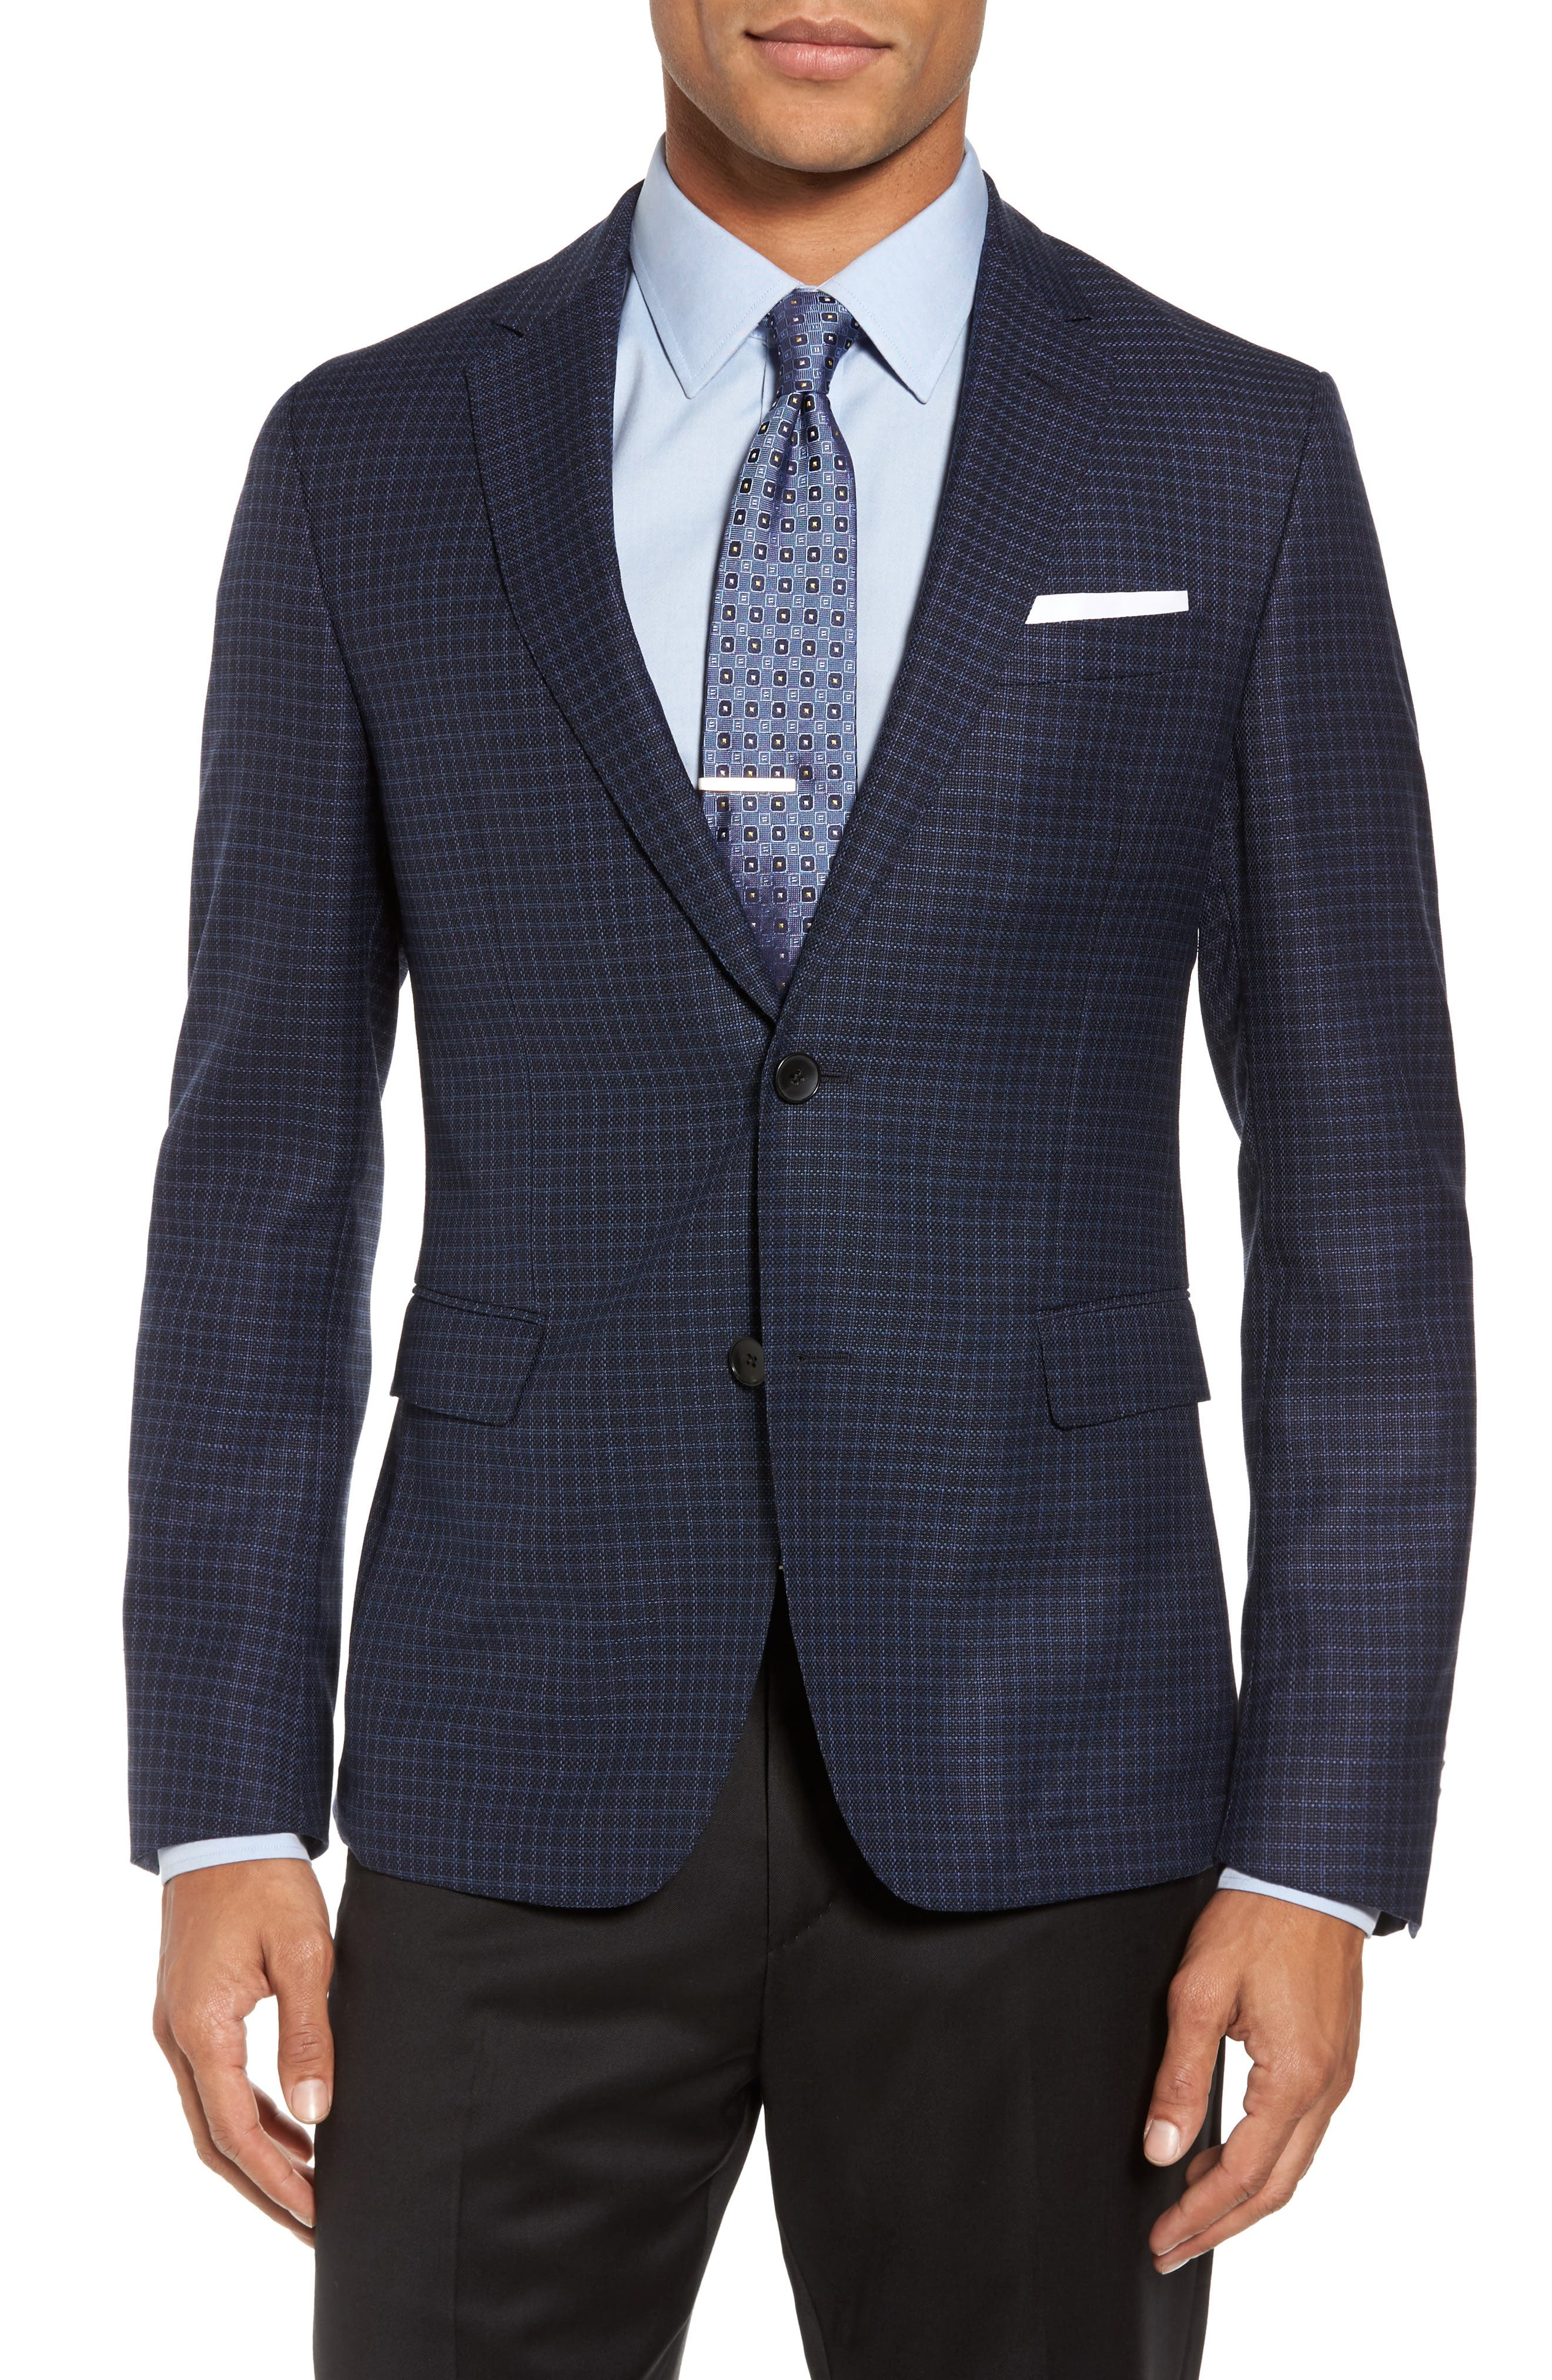 Alternate Image 1 Selected - BOSS Nobis Trim Fit Check Wool Sport Coat